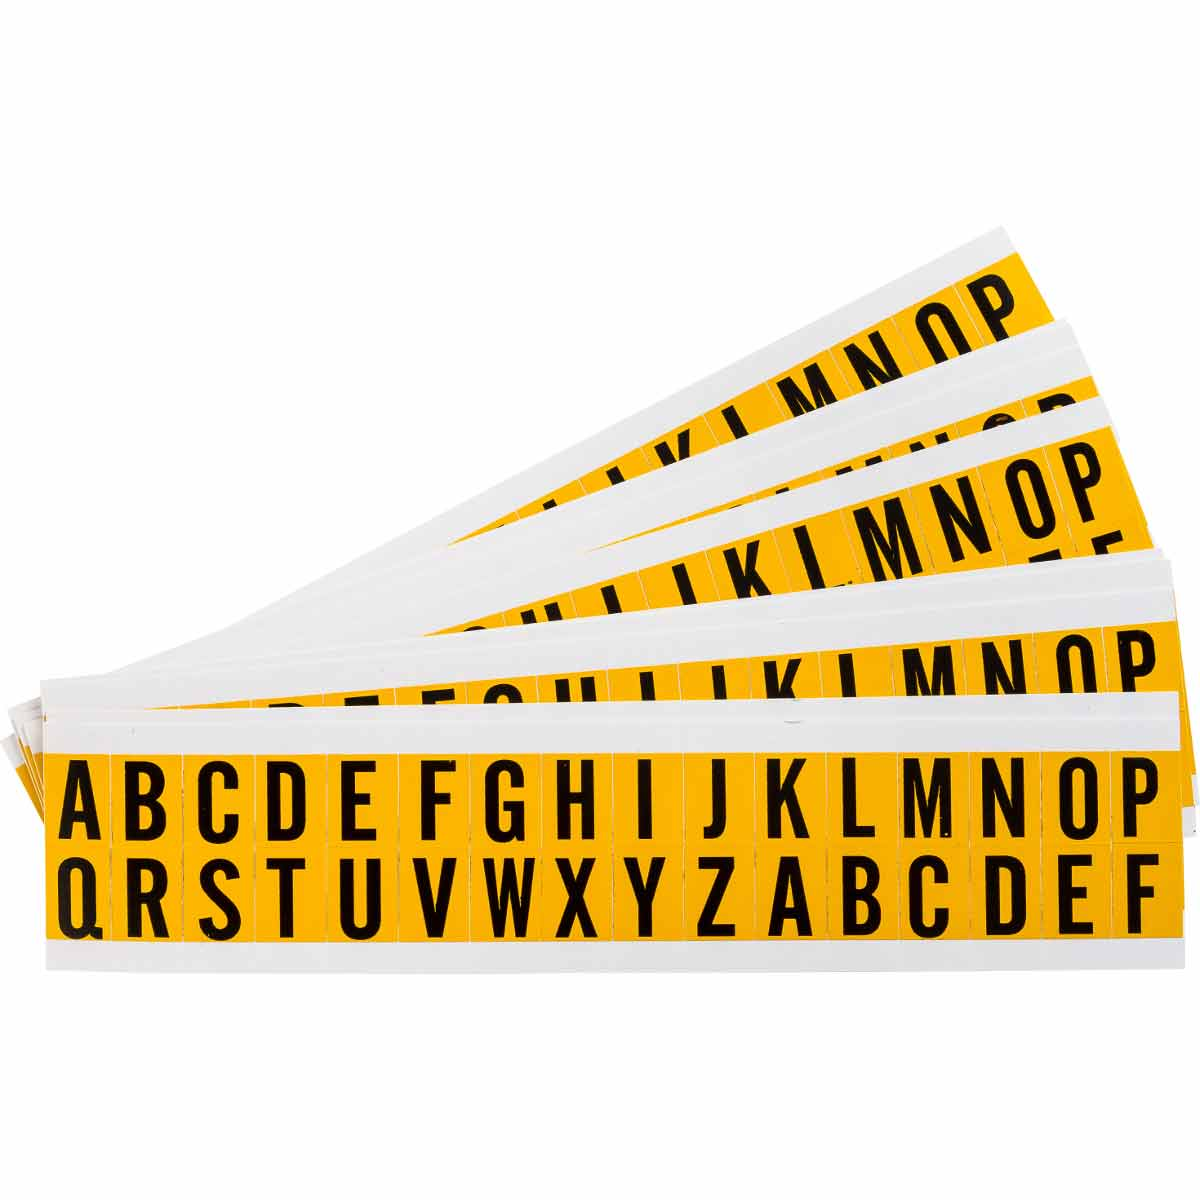 Brady® 97600 1520 Consecutive Non-Reflective Standard Letter Label Kit, Black A to Z Character, 5/8 in H x 0.466 in W, Yellow Background, B-946 Vinyl